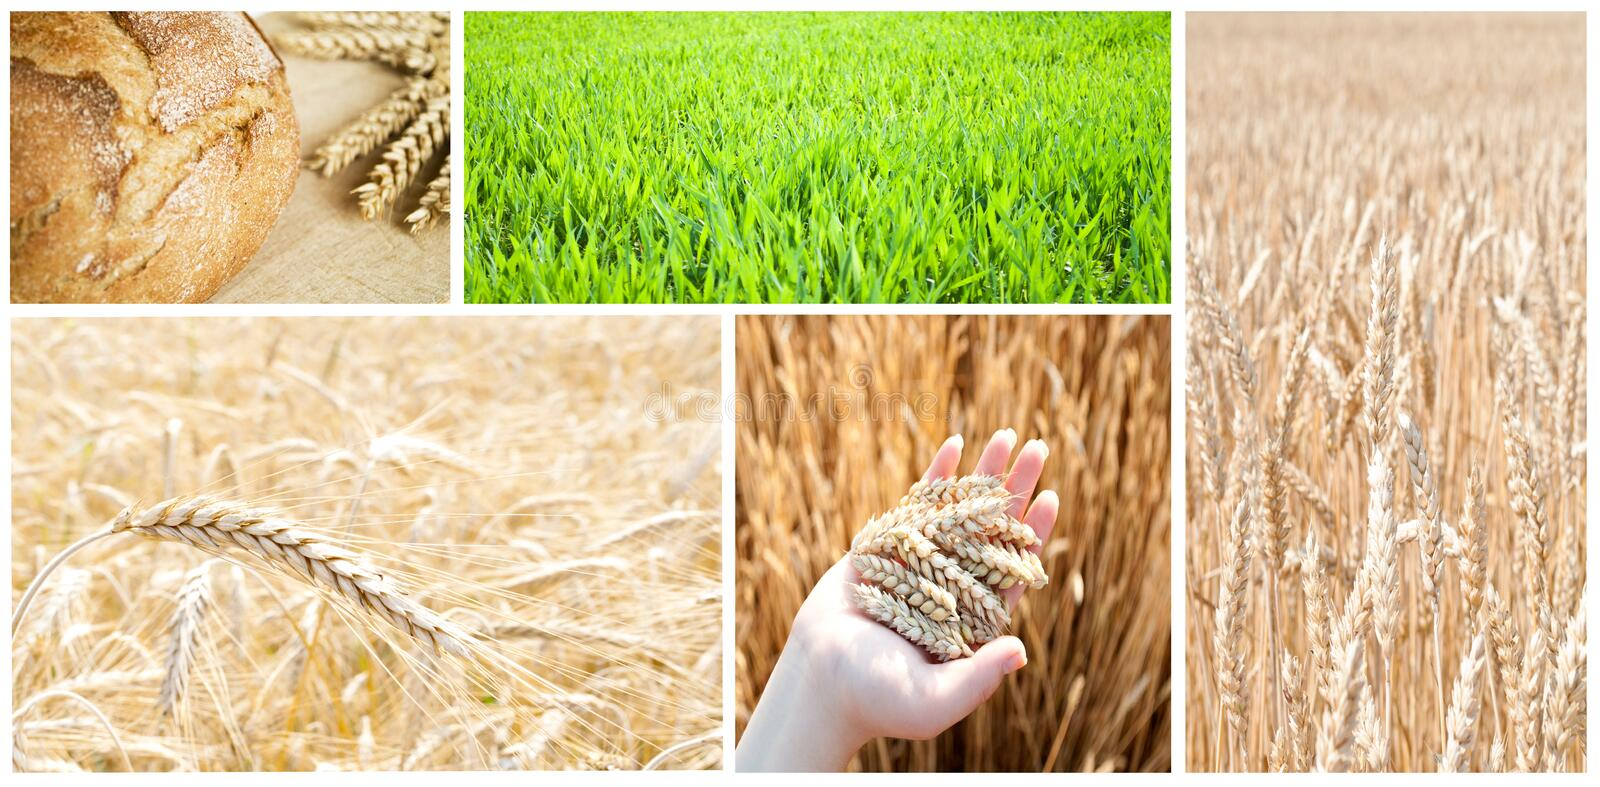 Collage d'agriculture image stock